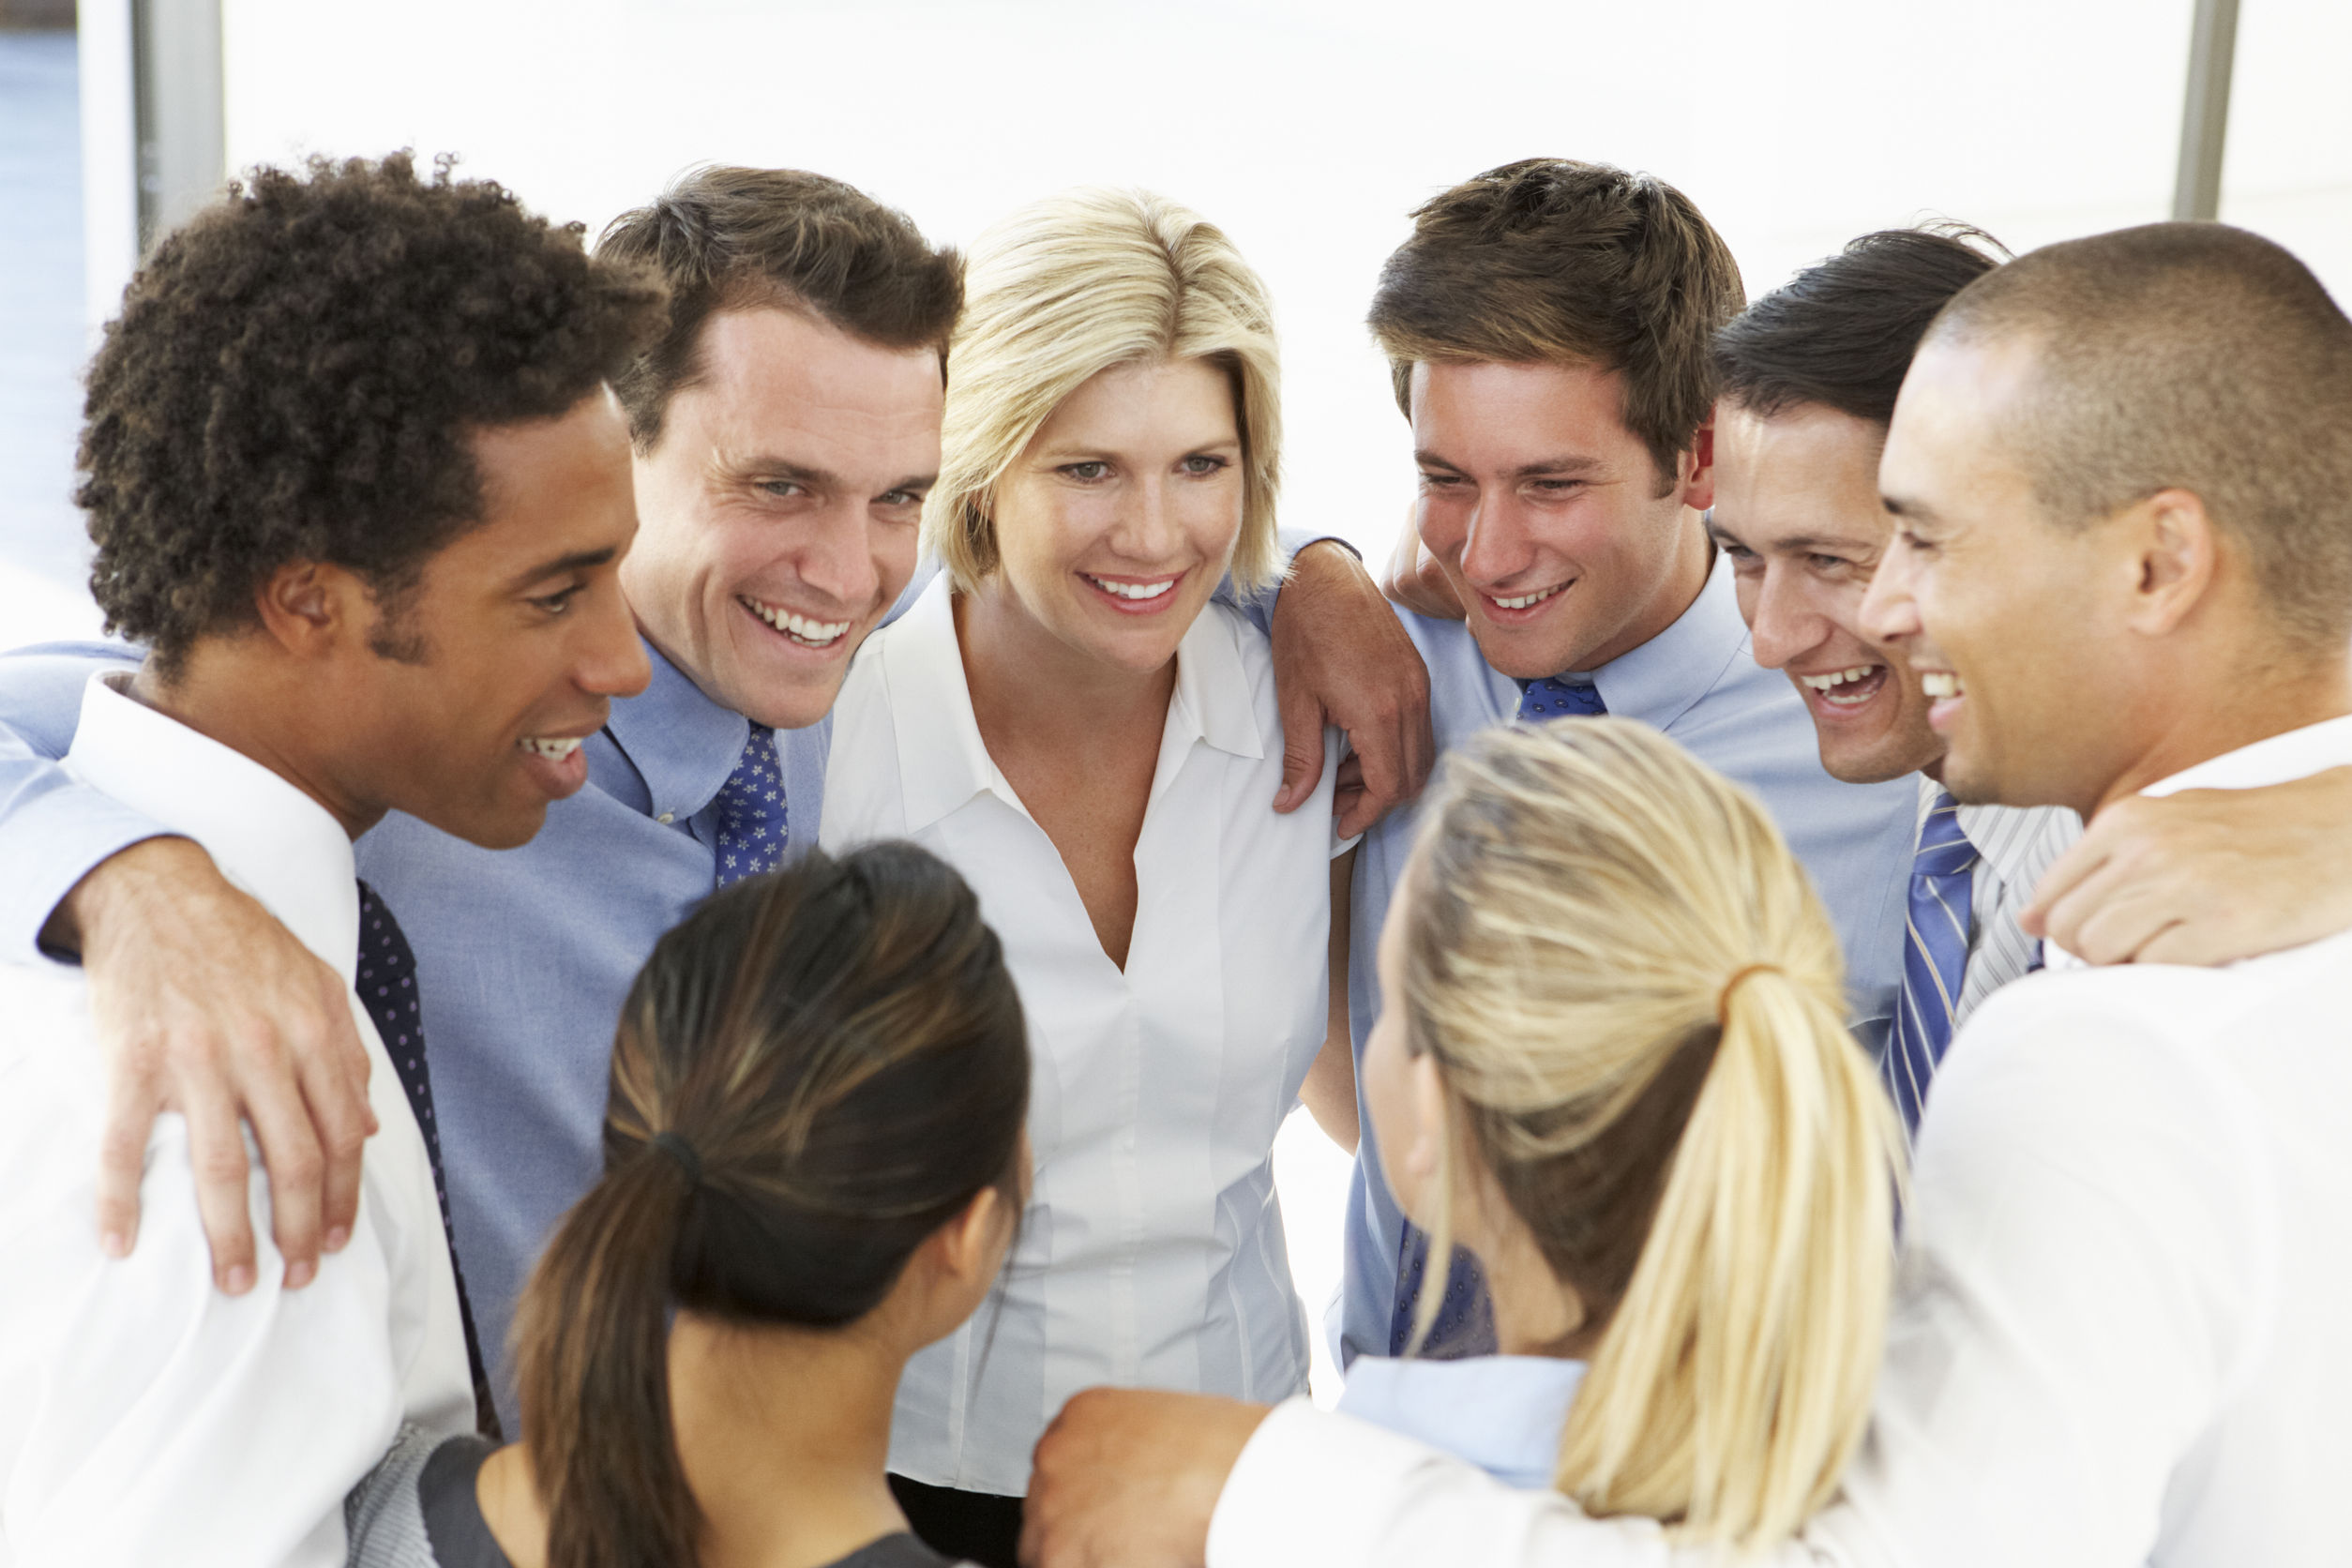 7 Reasons Why Corporate Team Building Is Necessary